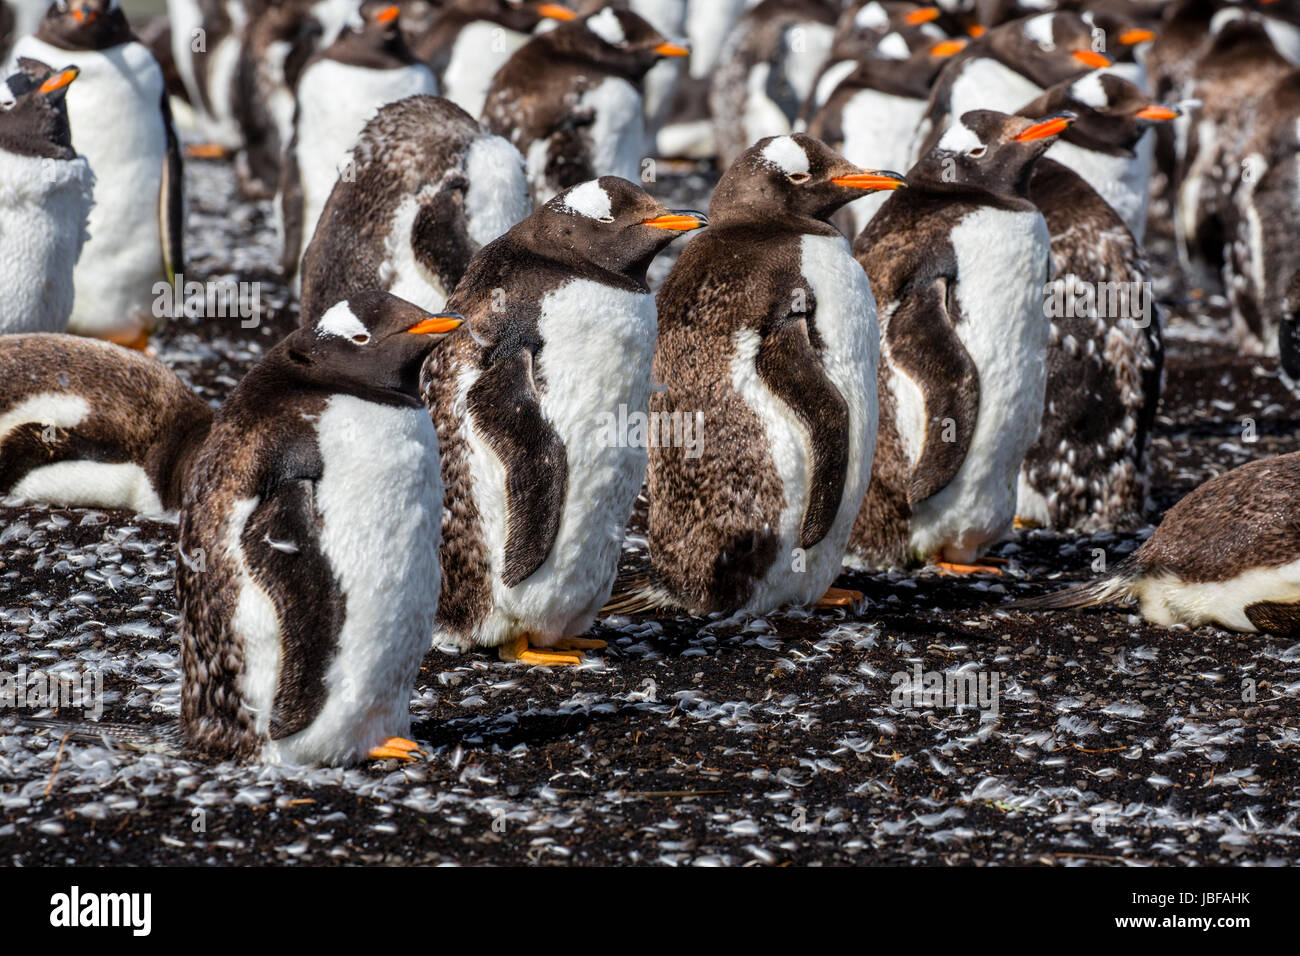 Molting Gentoo penguins at Bluff Cove, Falkland Islands - Stock Image